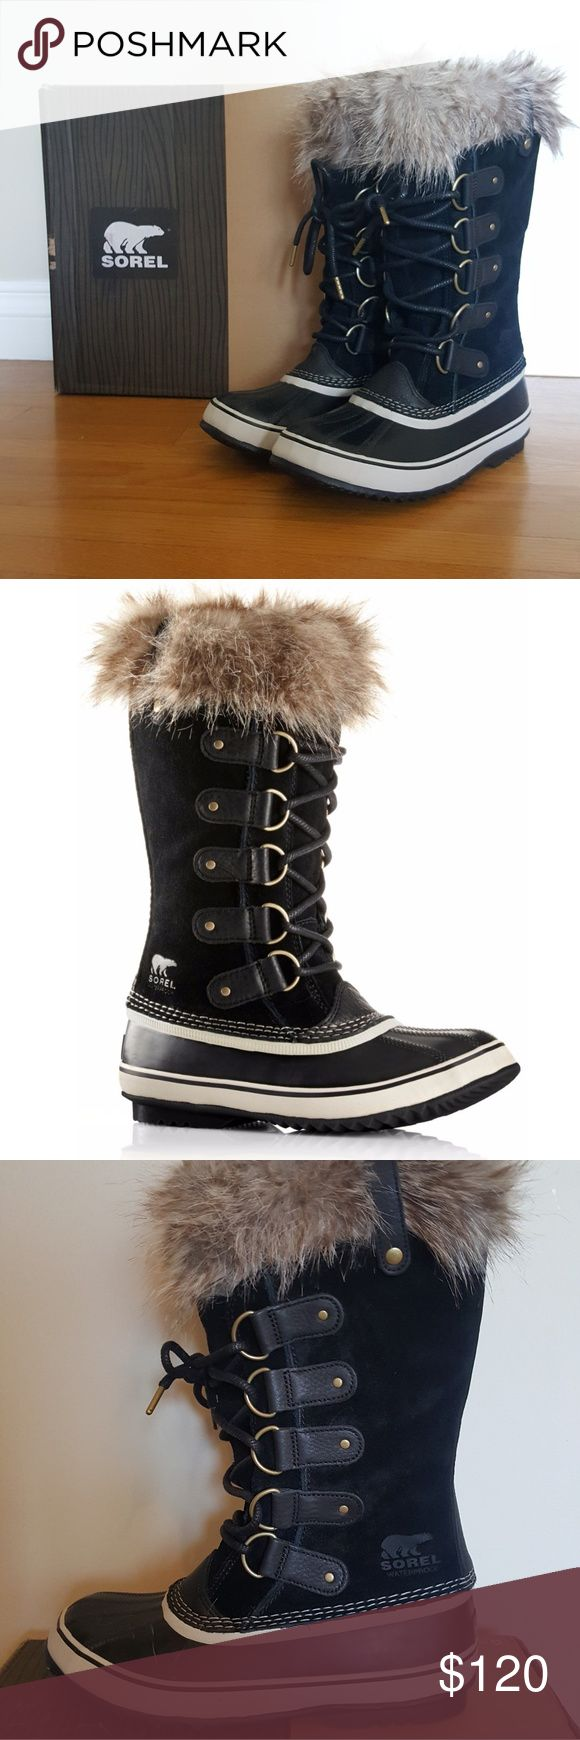 "SOREL ""Joan of Arctic"" black stone women's boots Brand new in box.  Never used.  Sorel Women's waterproof boots.  ---  Waterproof impermeable -- Full-grain leather & suede upper, super-soft faux fur around the cuff, removable, recycled felt inner boot to ensure that feet stay warm, dry and comfortable in cold winter conditions.   Great for snow!   Measure your foot standing up. Sorel Shoes Winter & Rain Boots"